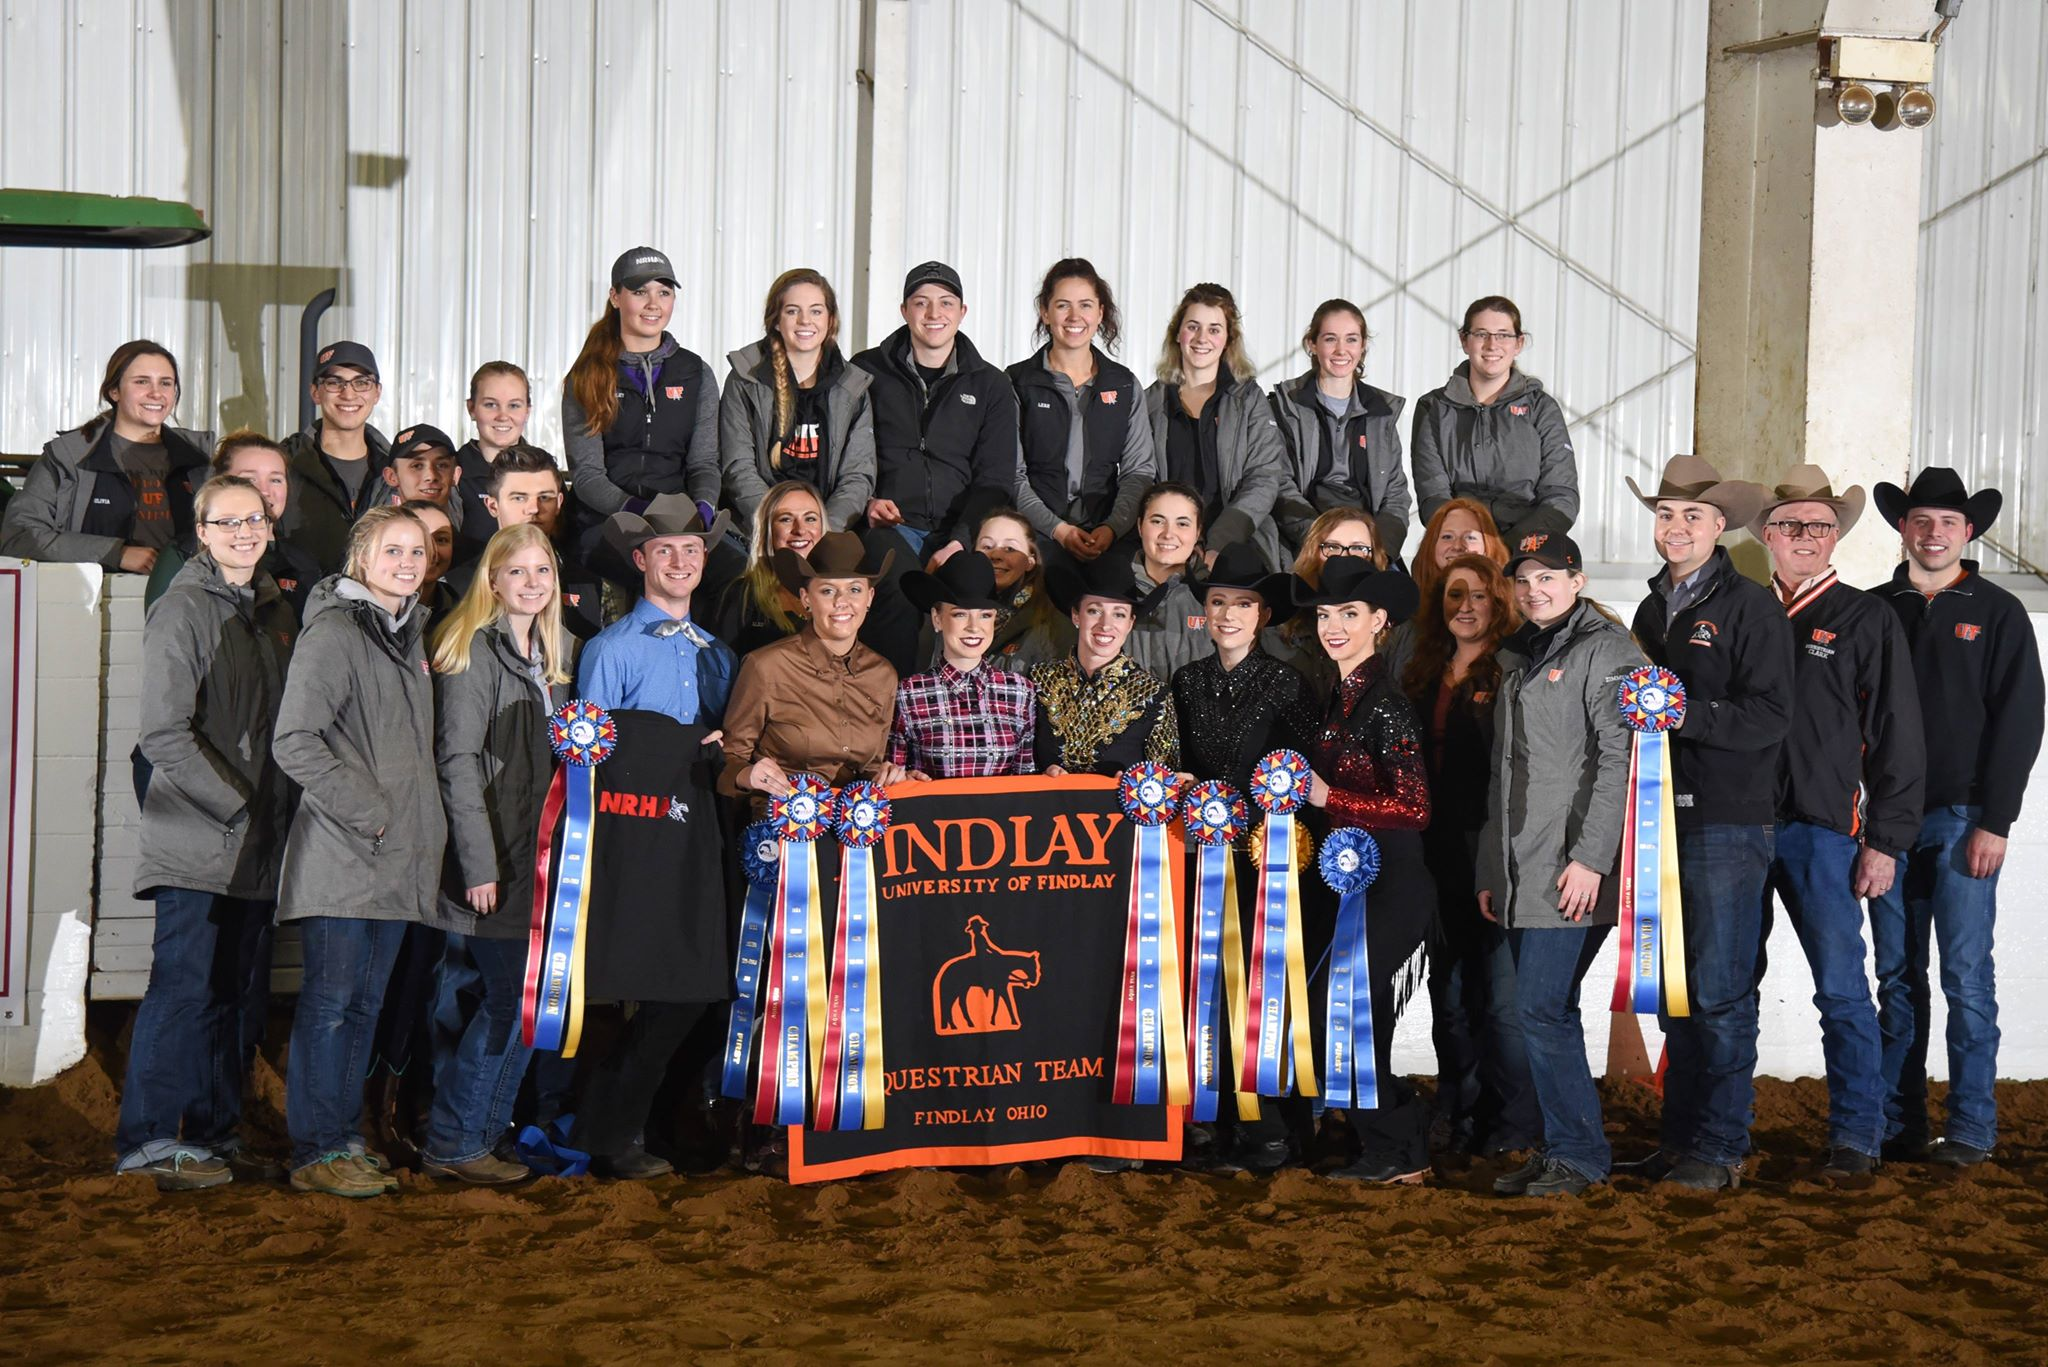 University of Findlay won their own hosted Semi-Finals